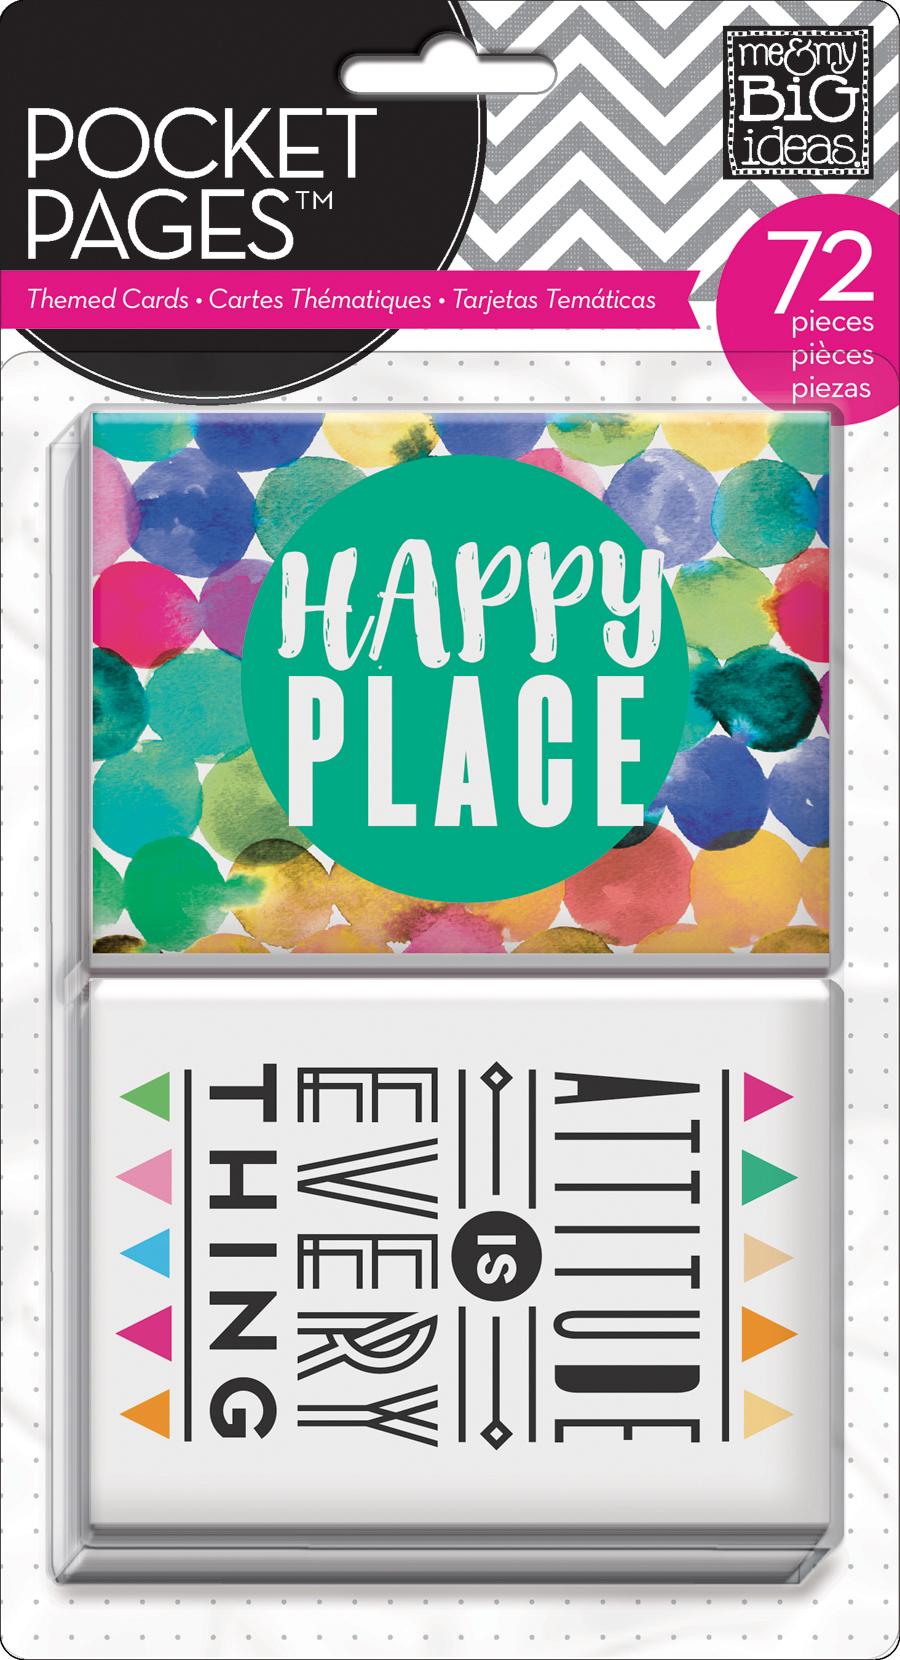 'Watercolor' POCKET PAGES™ cards | me & my BIg ideas.jpg